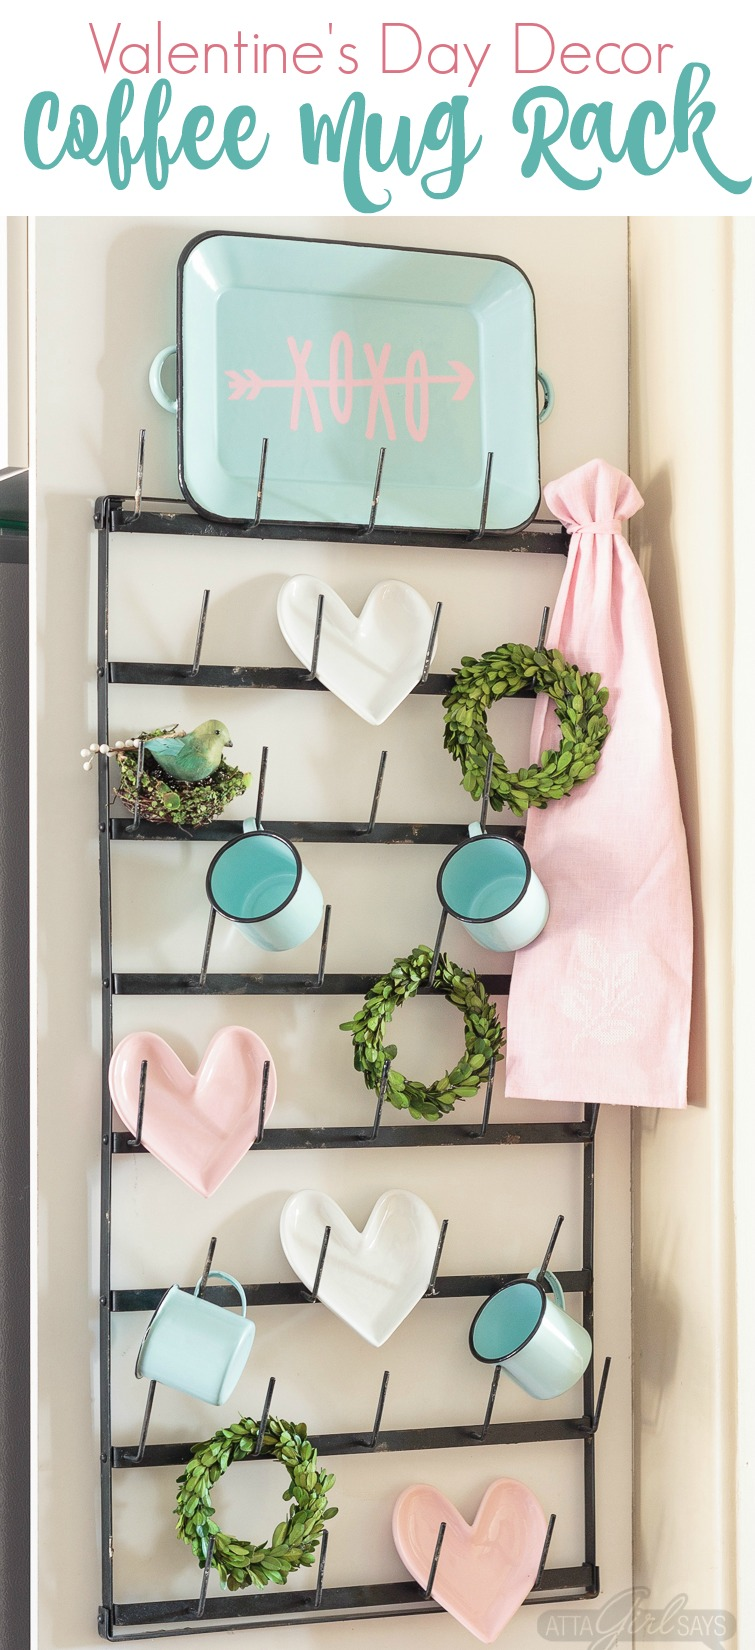 "Dress up your coffee mug wall rack with simple Valentine's Day decor, including a ""Gossip Girl"" inspired quote you can make with your Cricut. Enamel coffee mugs, miniature boxwood wreaths and heart-shaped plates! Swoon. Click for sources to recreate this look! #mugrack #valentinesday #gossipgirl #xoxo #farmhouse #aquaandpink #mugrackmonday #valentinesdecor #cricutmade #cricutmaker #cricutexploreair #quotes"